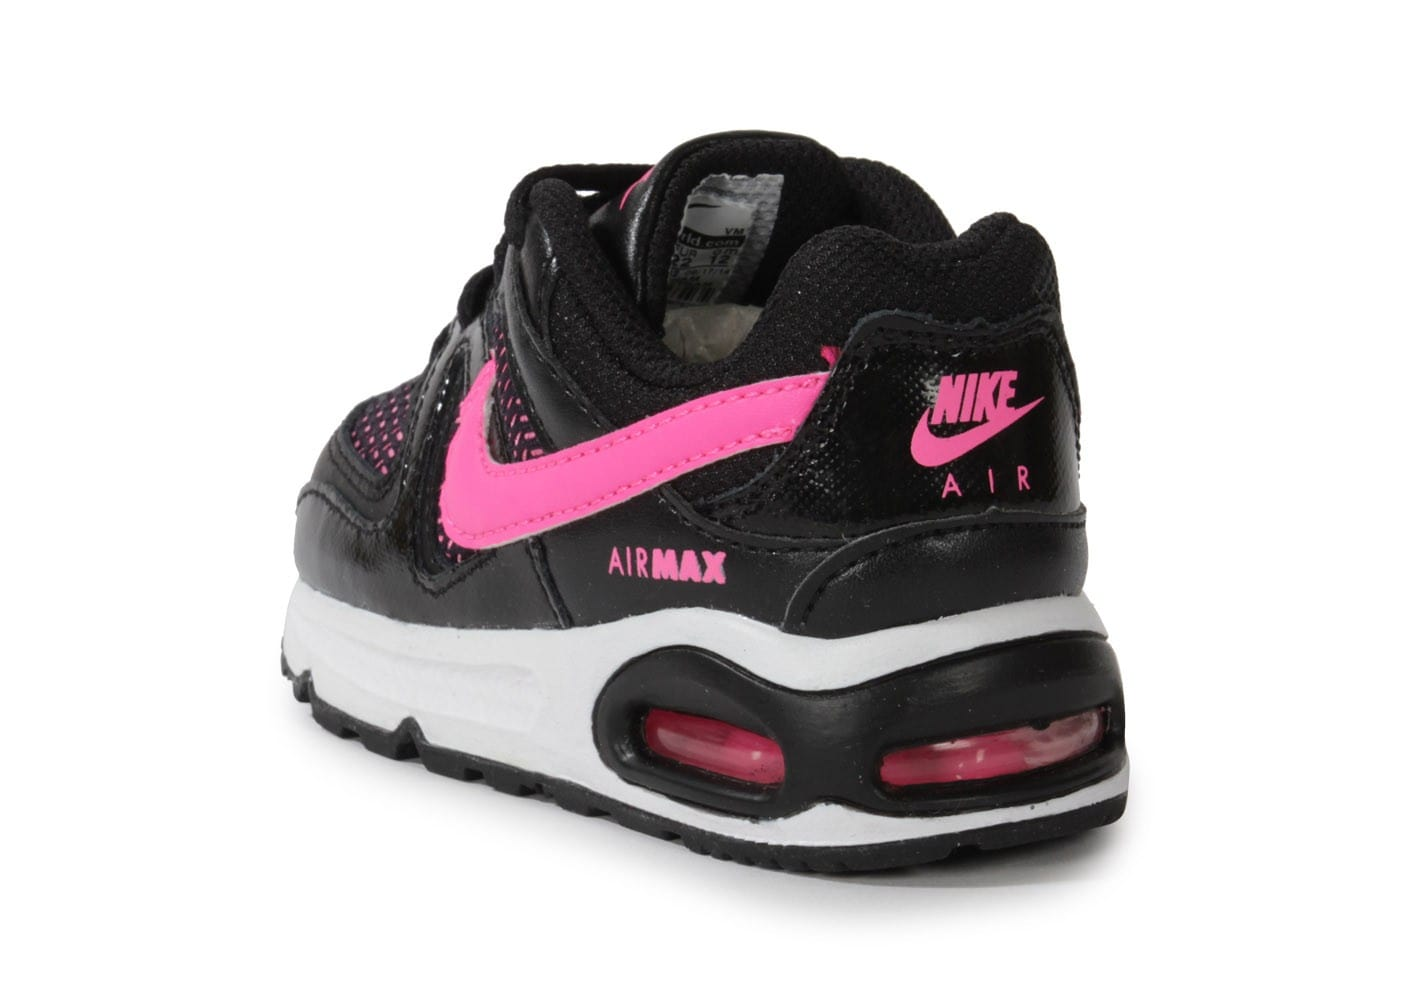 nike air max fille rose et noir. Black Bedroom Furniture Sets. Home Design Ideas